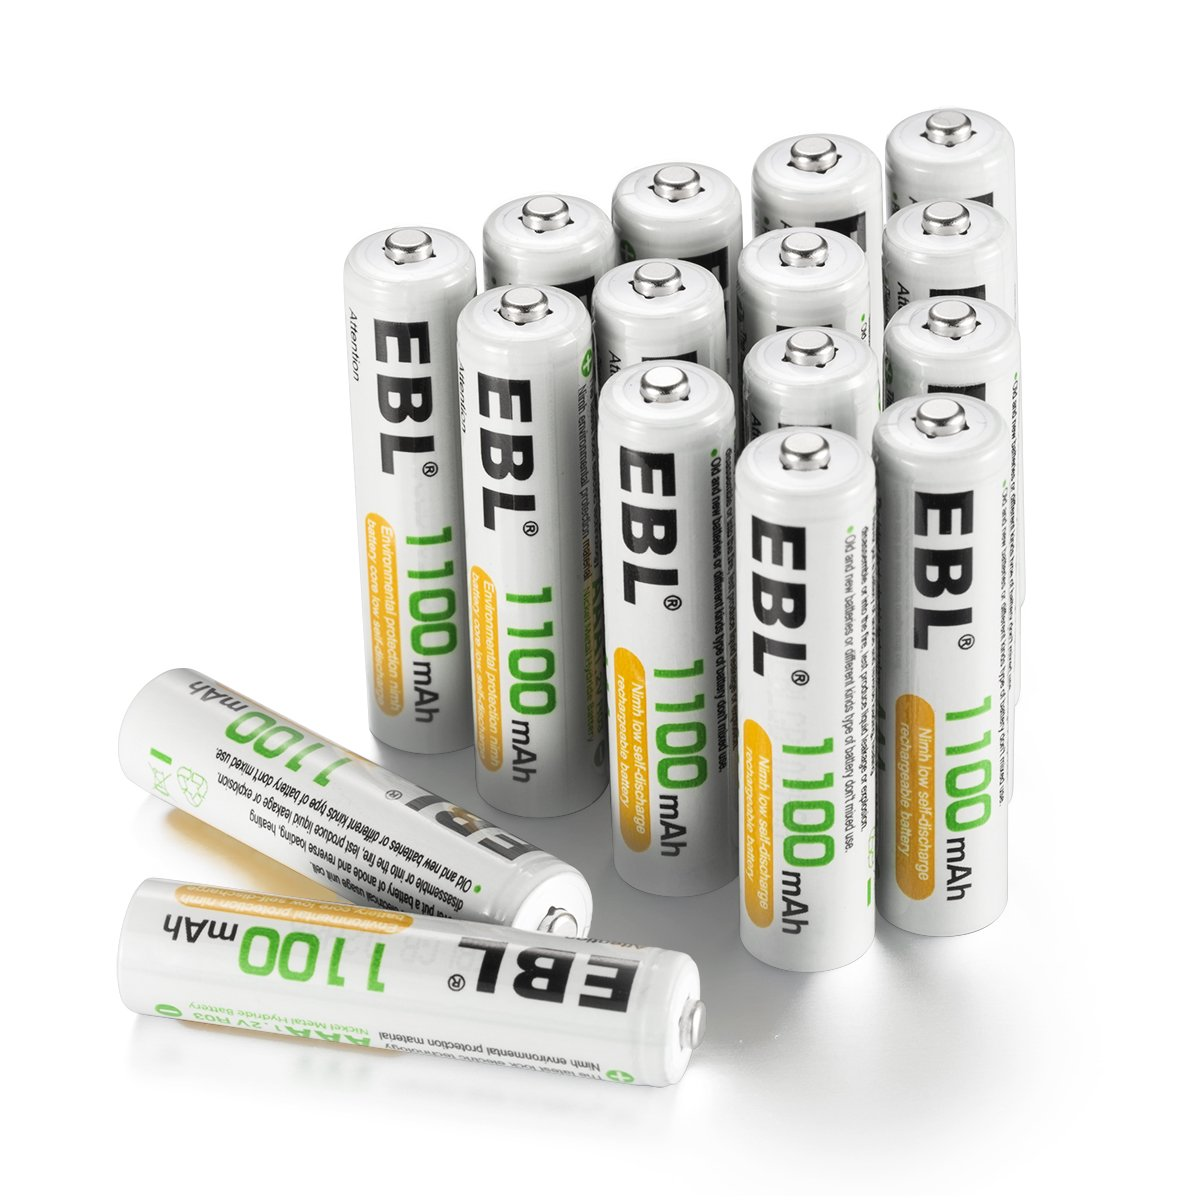 EBL 16 Pack AAA 1100mAh High Capacity Rechargeable Batteries 1.2V Ni-MH 1200 Cycles With Battery Case EB-81224